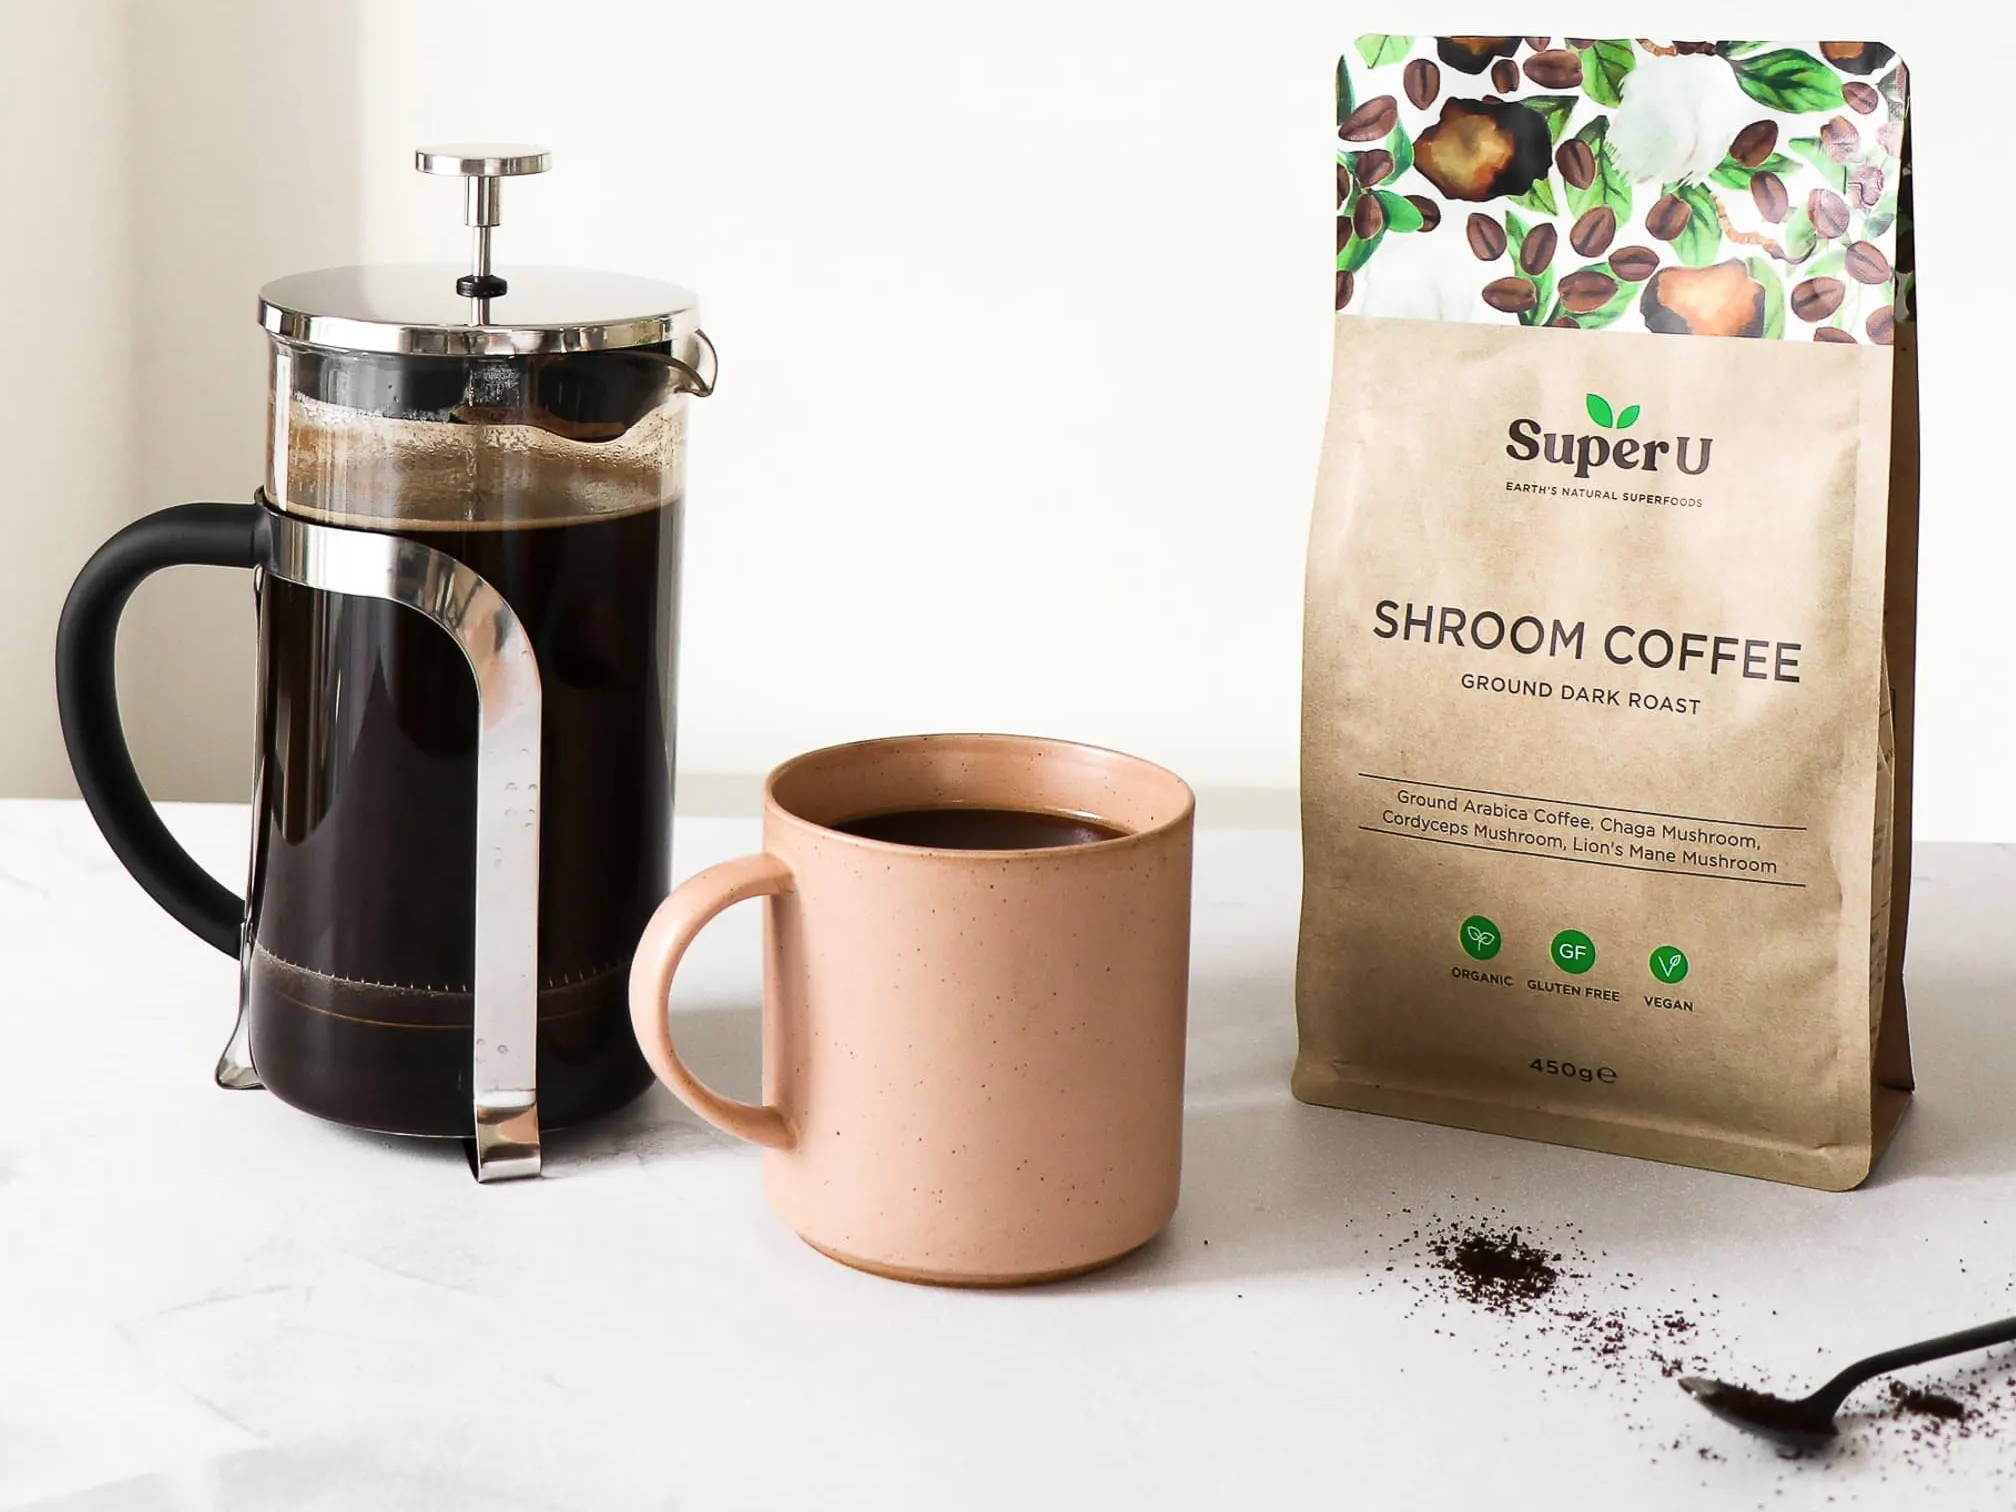 Ground mushroom coffee in a cafetiere